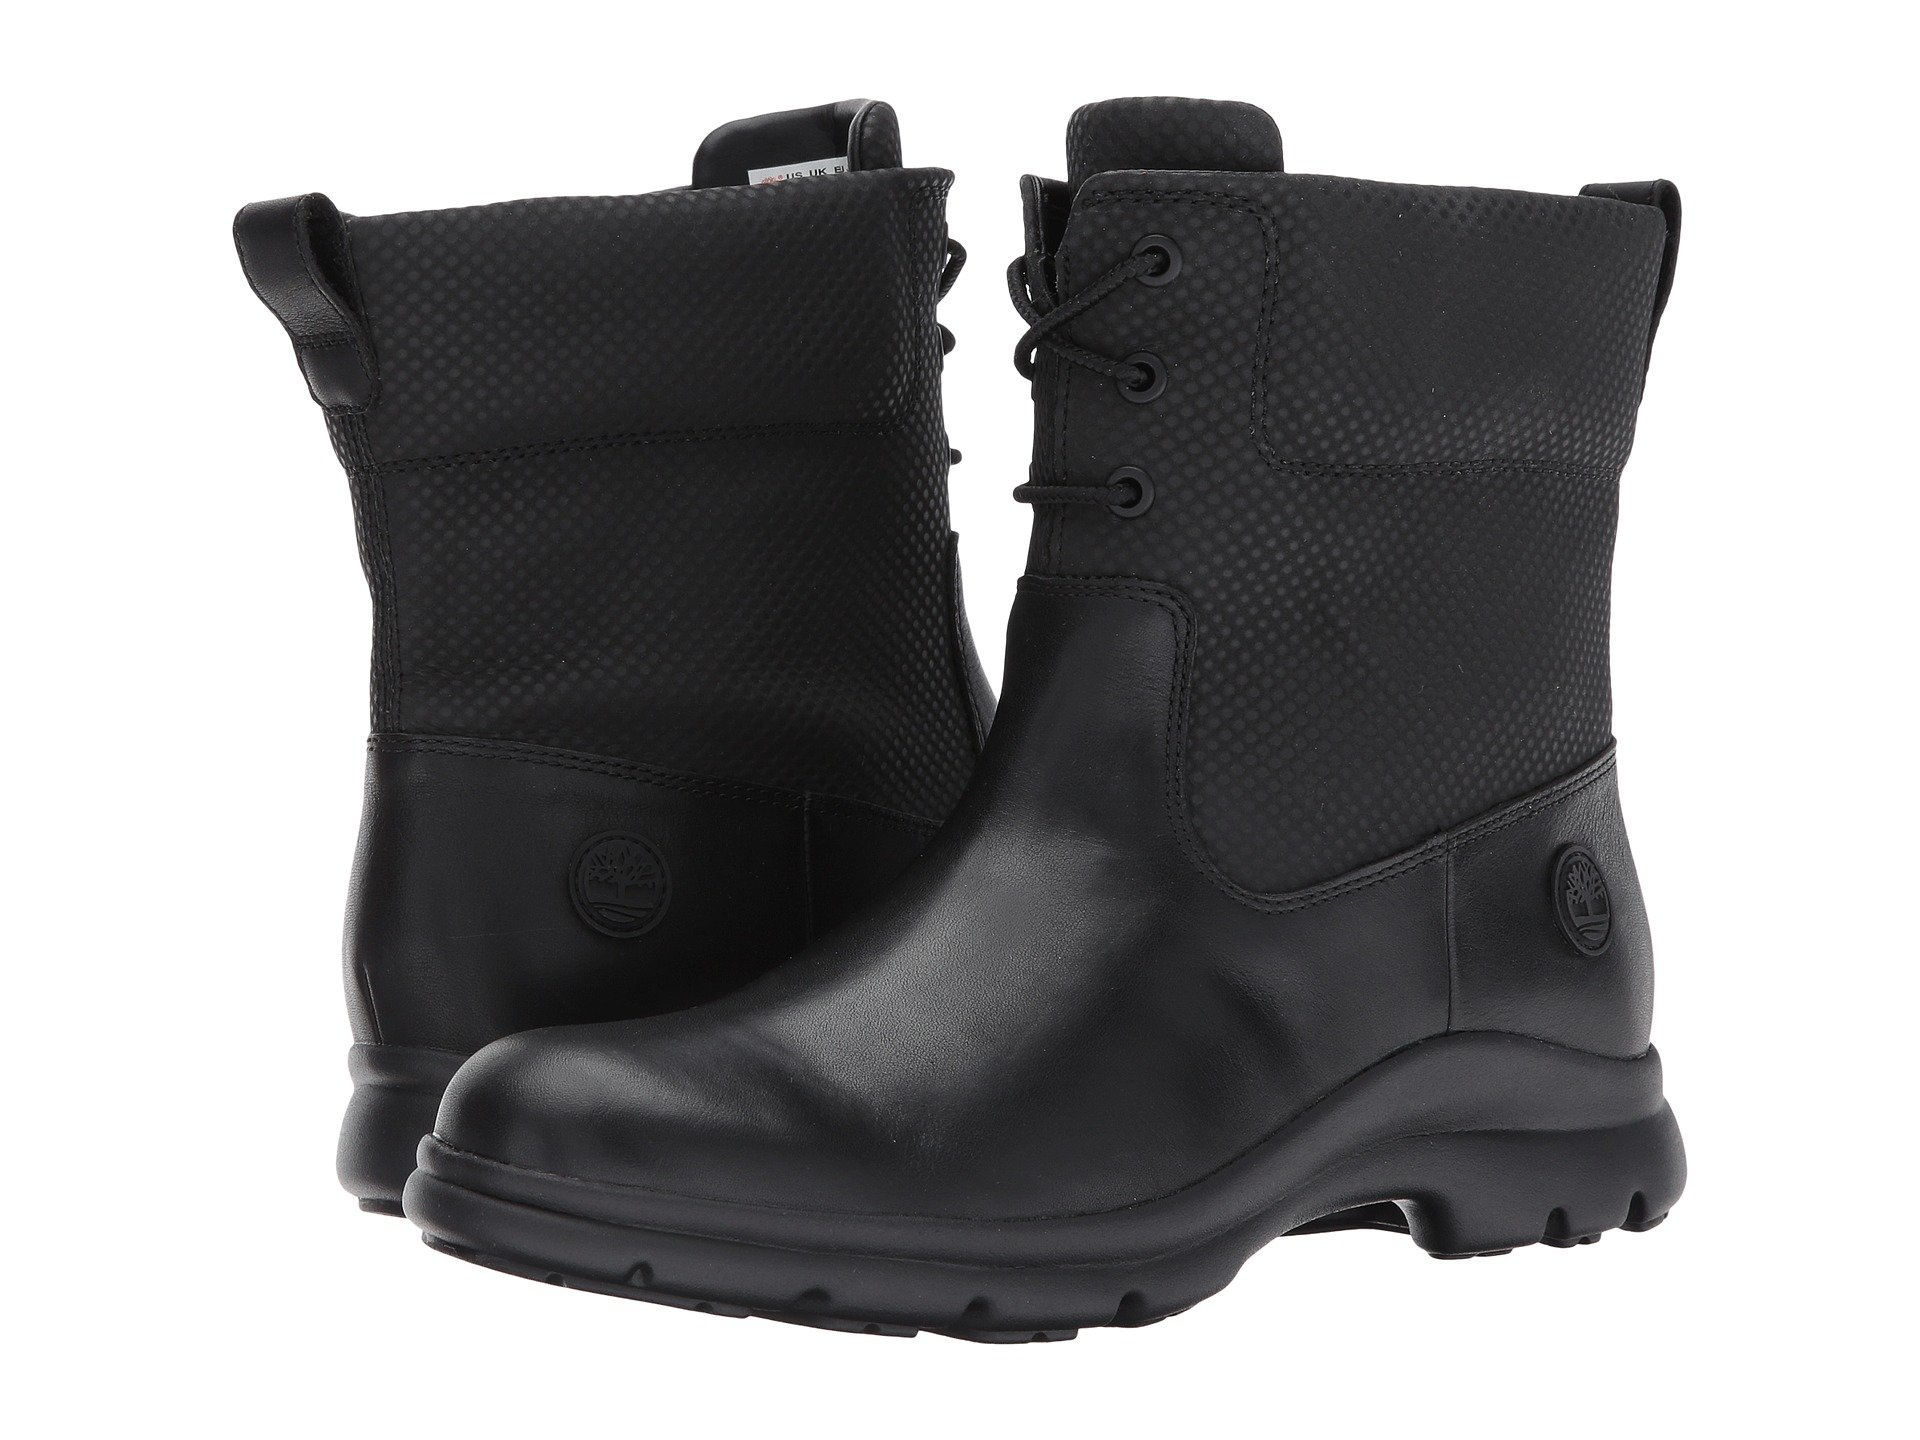 Timberland Turain Waterproof Ankle Boot At Zappos Com